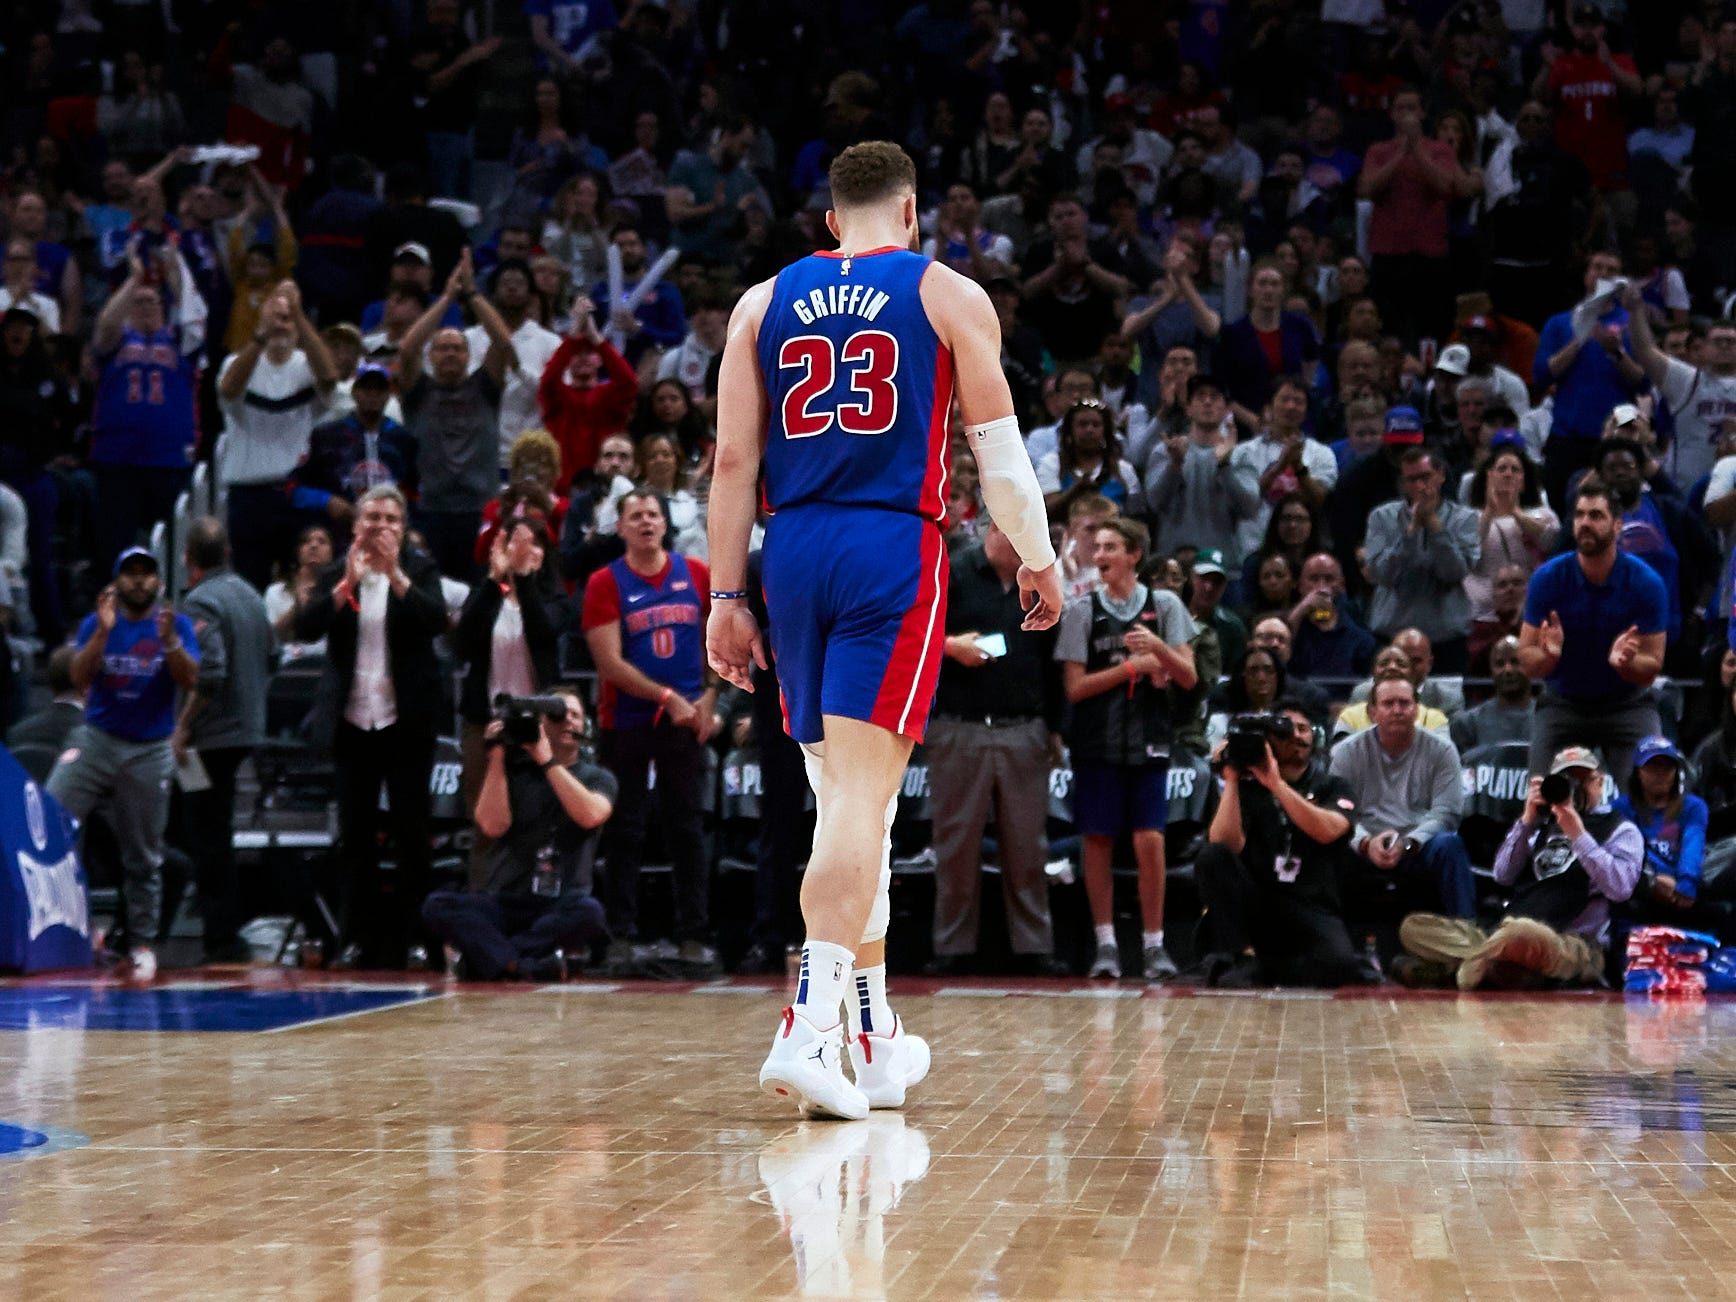 April 22: Pistons forward Blake Griffin gets a standing ovation as he leaves the floor after fouling out against the Bucks in Game 4.